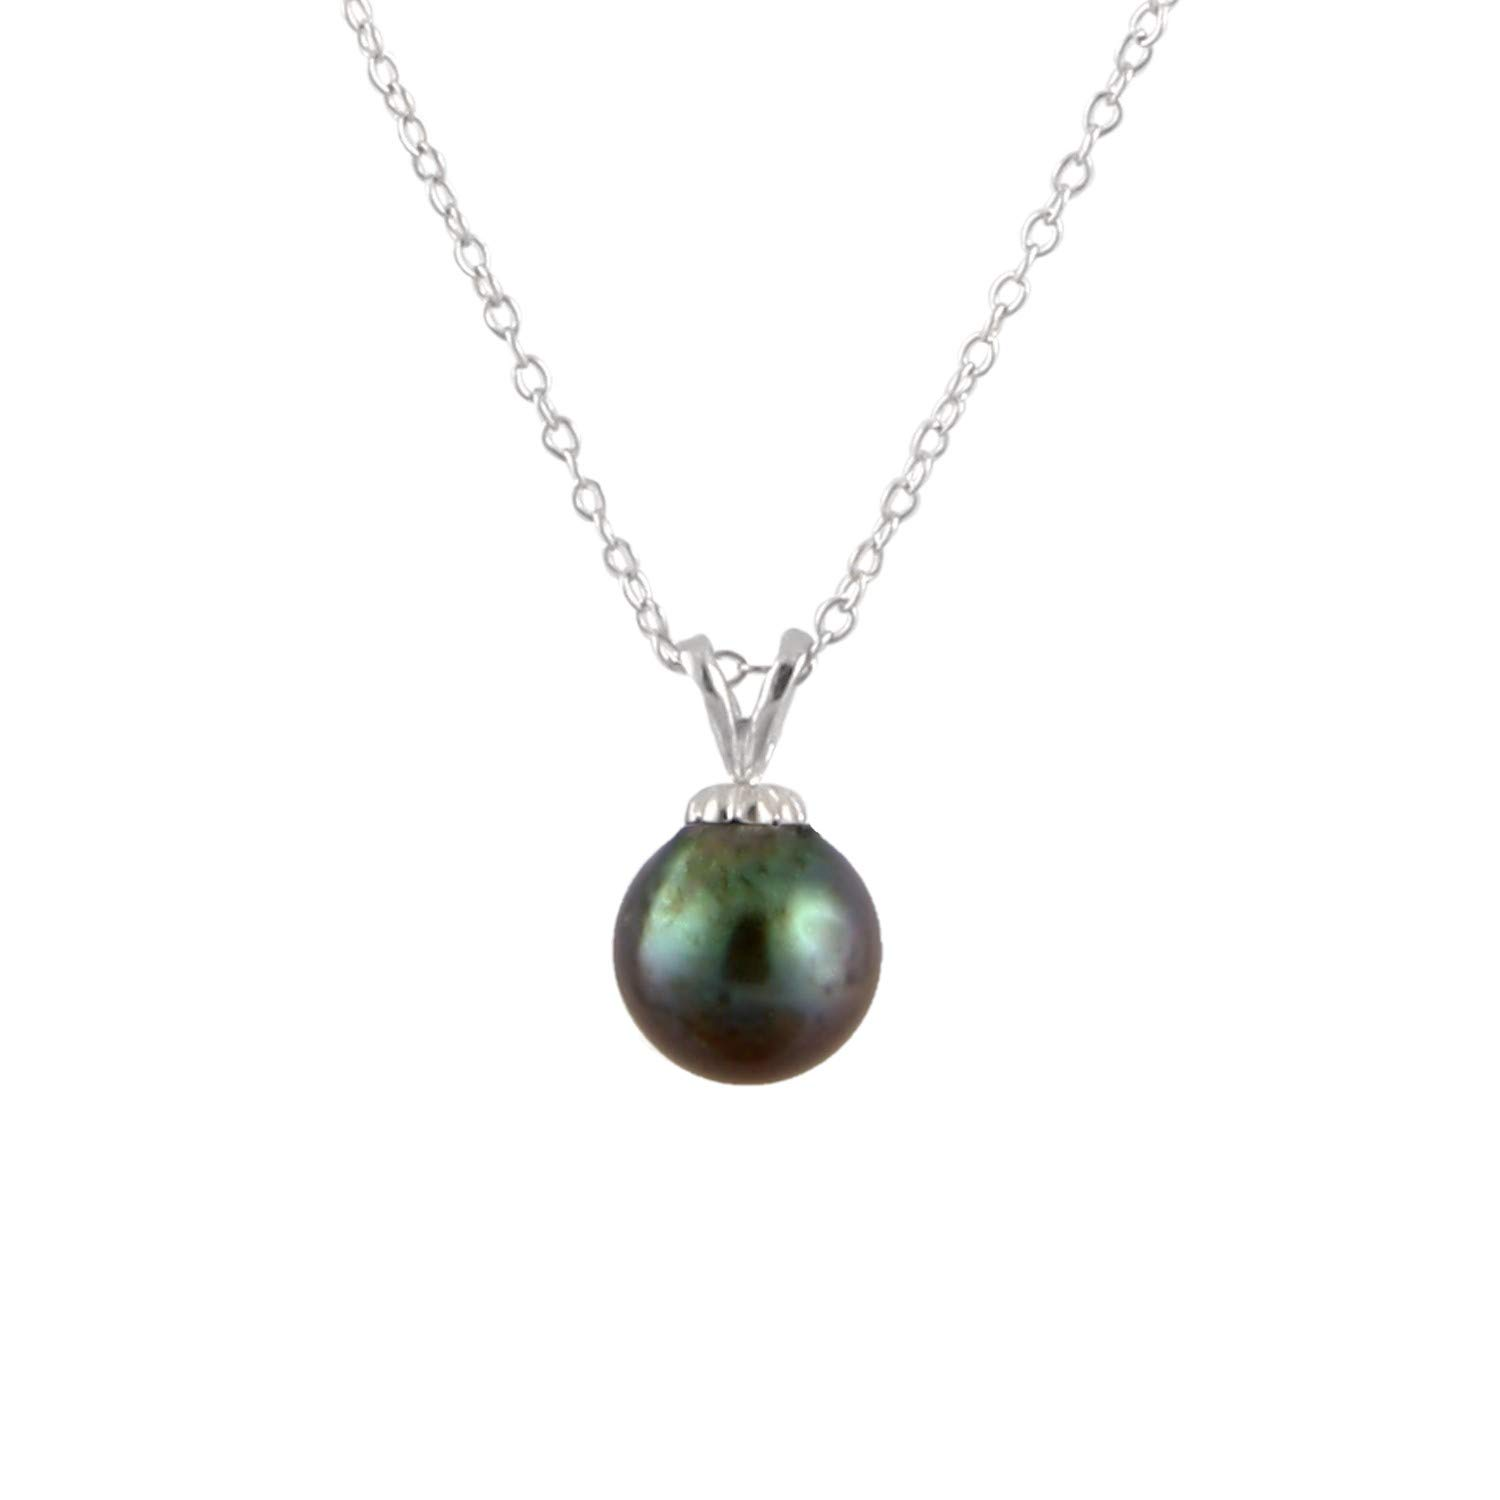 Sterling Silver Handpicked A Quality 8.5-9mm Genuine Akoya Saltwater Pearl Solitaire Pendant Necklace for Women 17